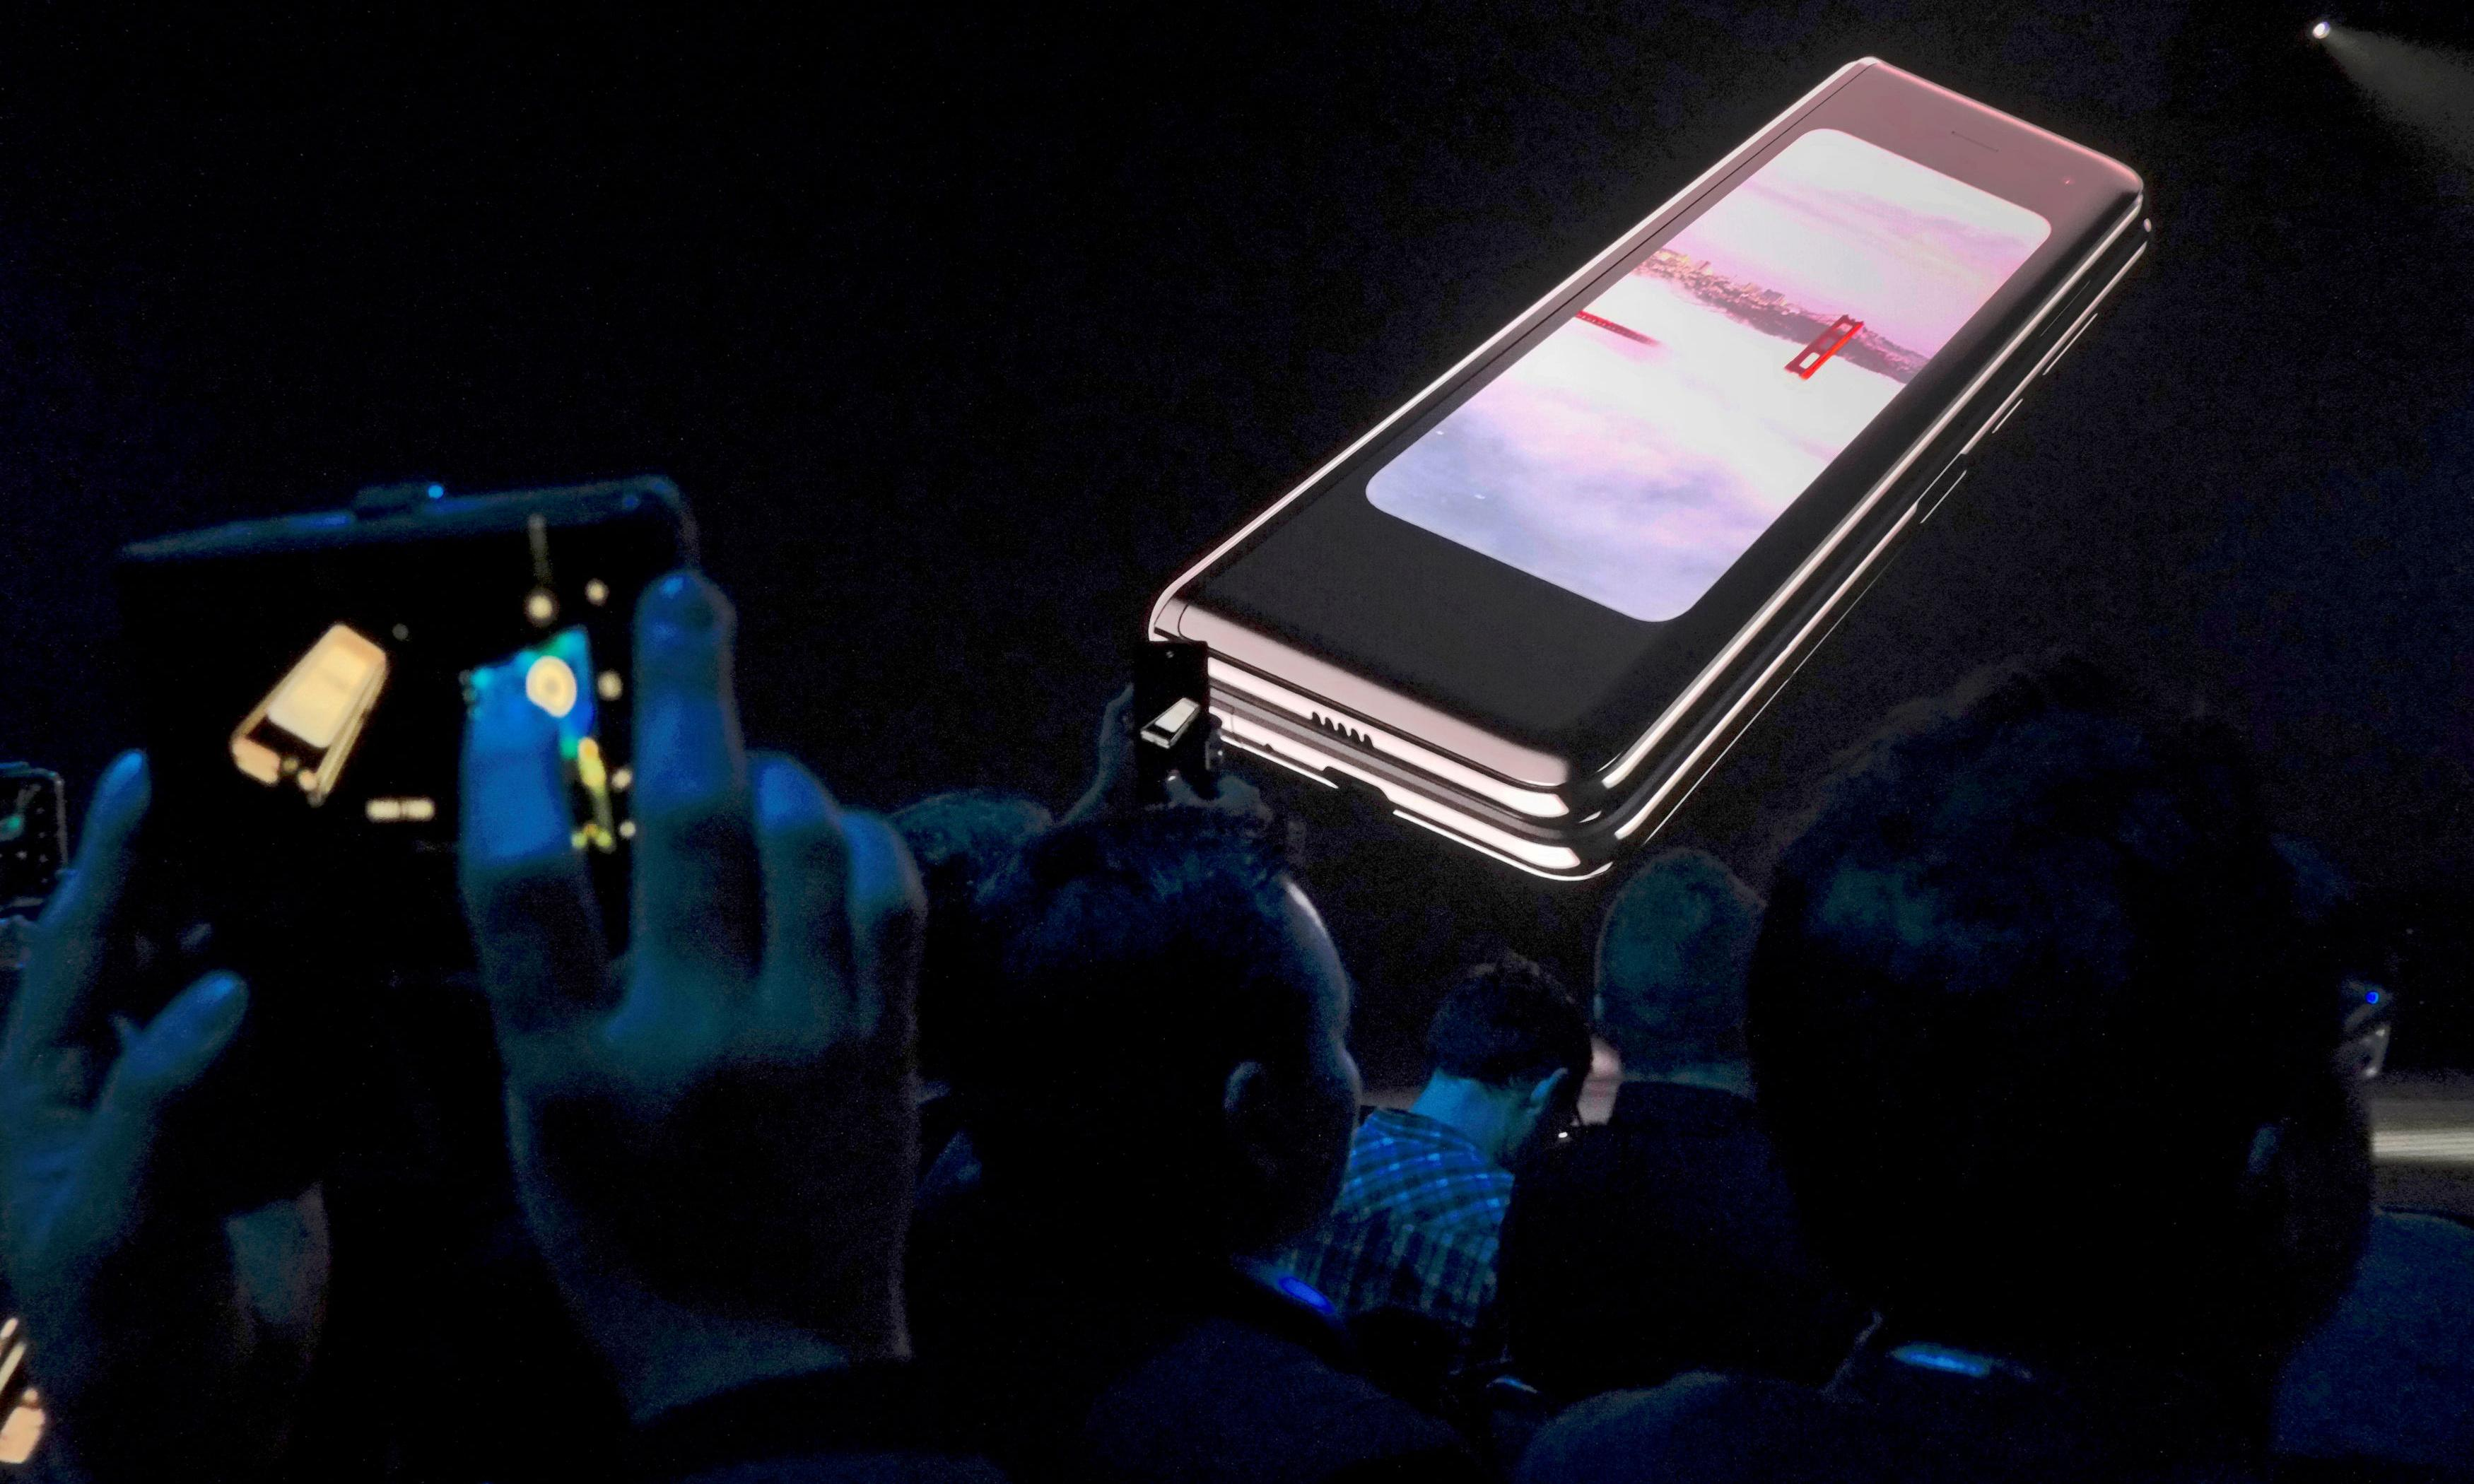 Innovate? Big tech would rather throw us a broken Samsung Galaxy Fold